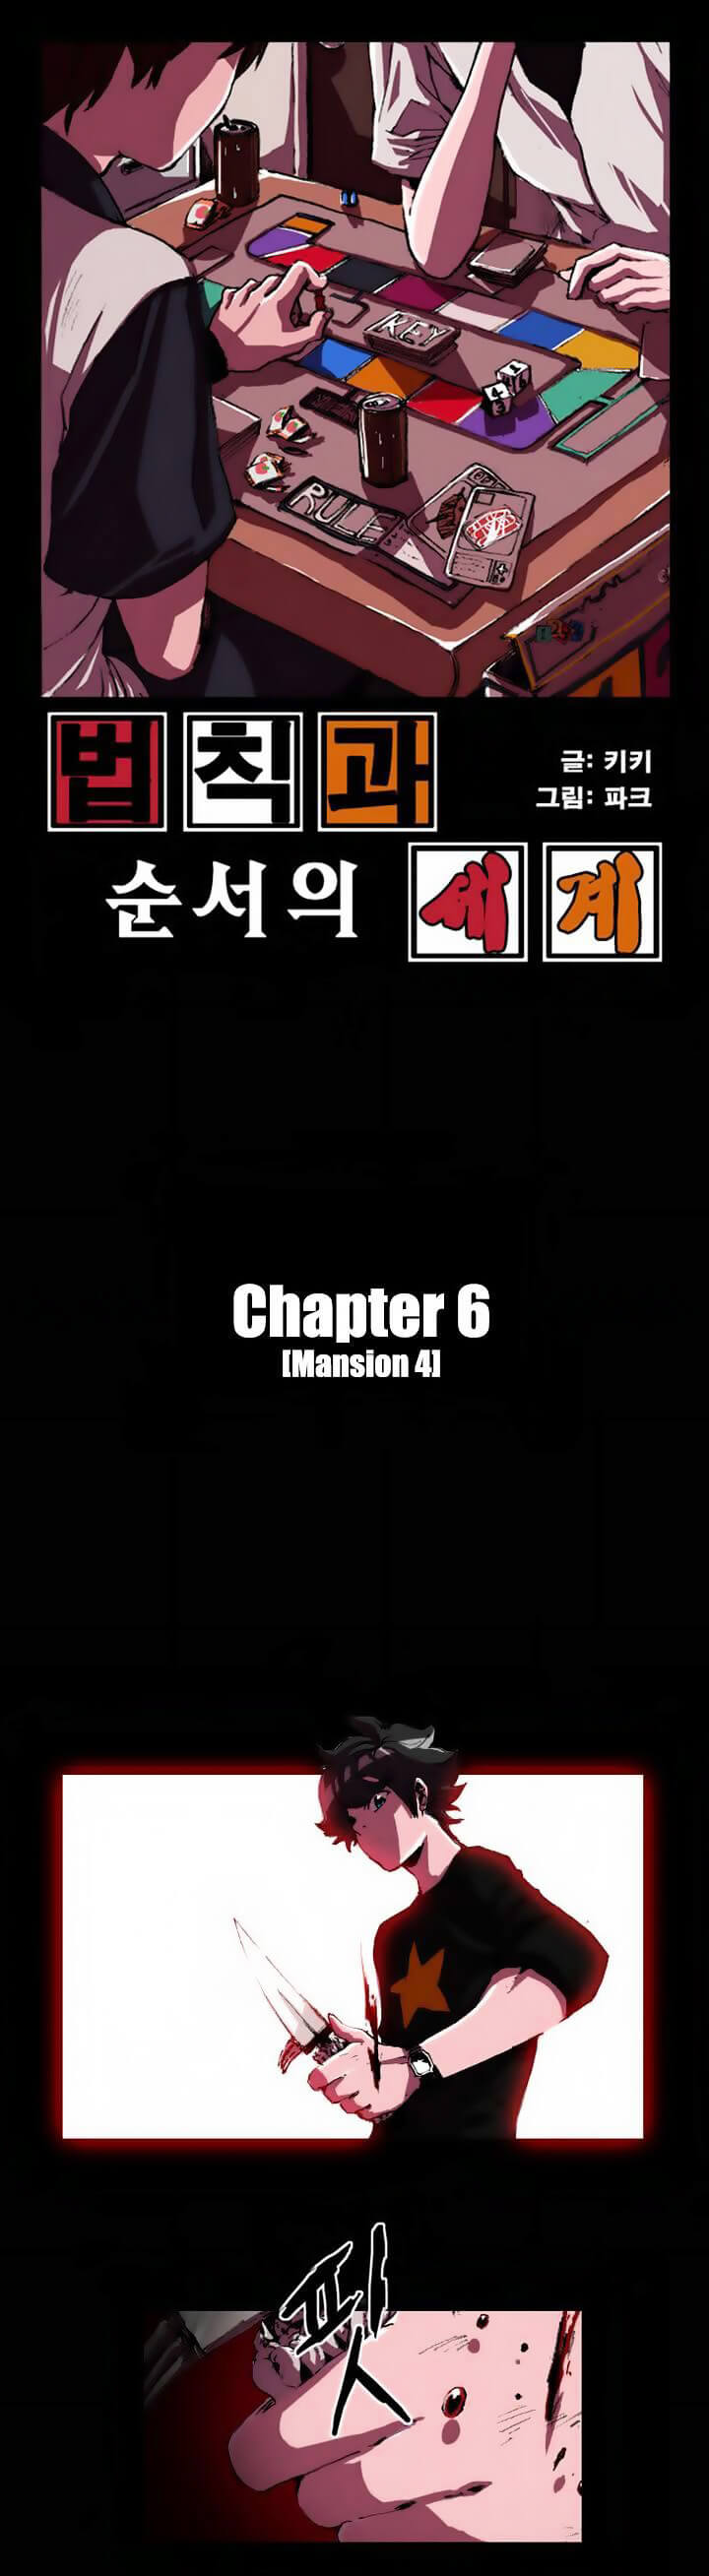 World of Law and Order Chap 6 - Next Chap 7